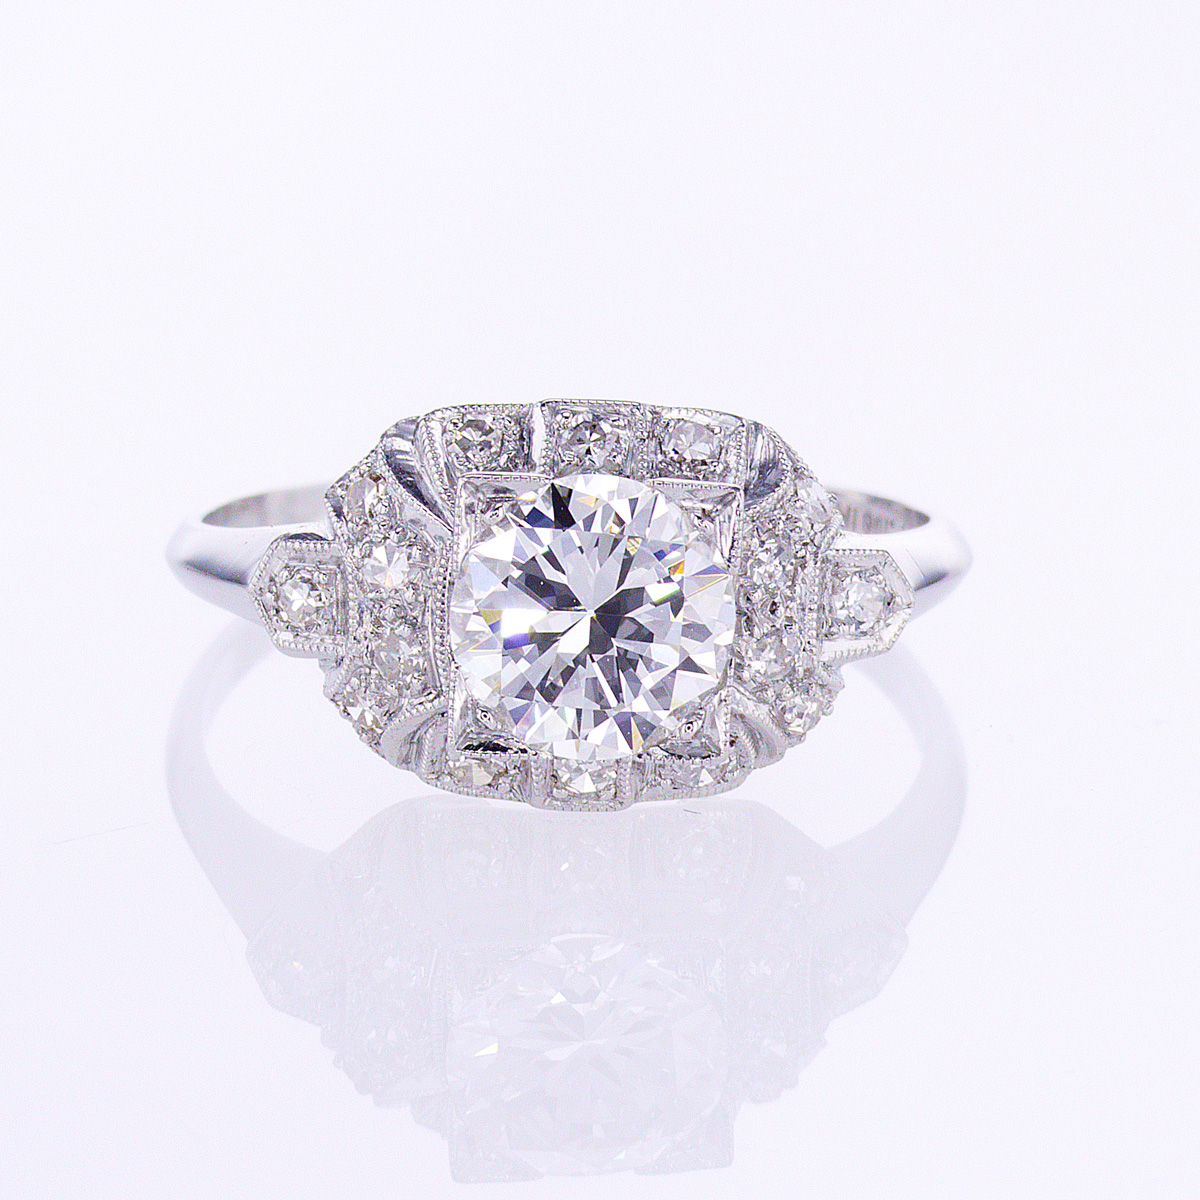 Vintage Art Deco Diamond Engagement Ring, Platinum